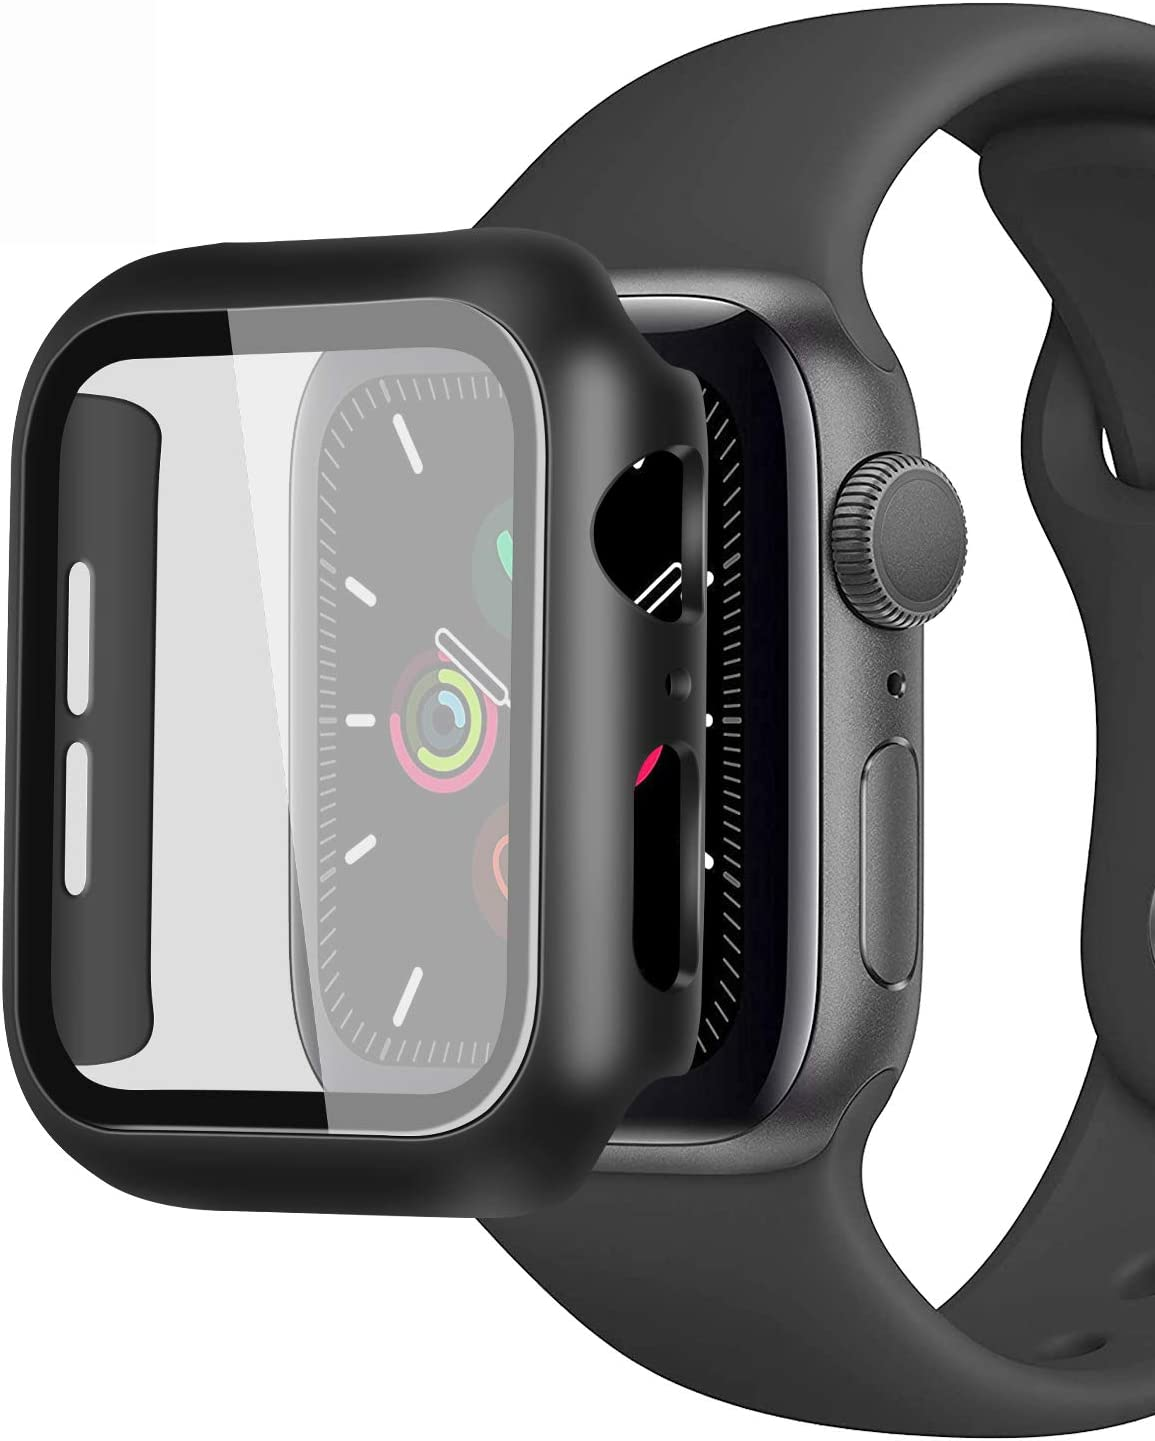 GGOOIG Compatible with Apple Watch SE Series 6/5/4 44mm Case with Screen Protector, 2-Pack Tempered Glass Hard PC Case Slim Full Screen Protective Bumper Cover for iWatch 44mm (Black+Black)